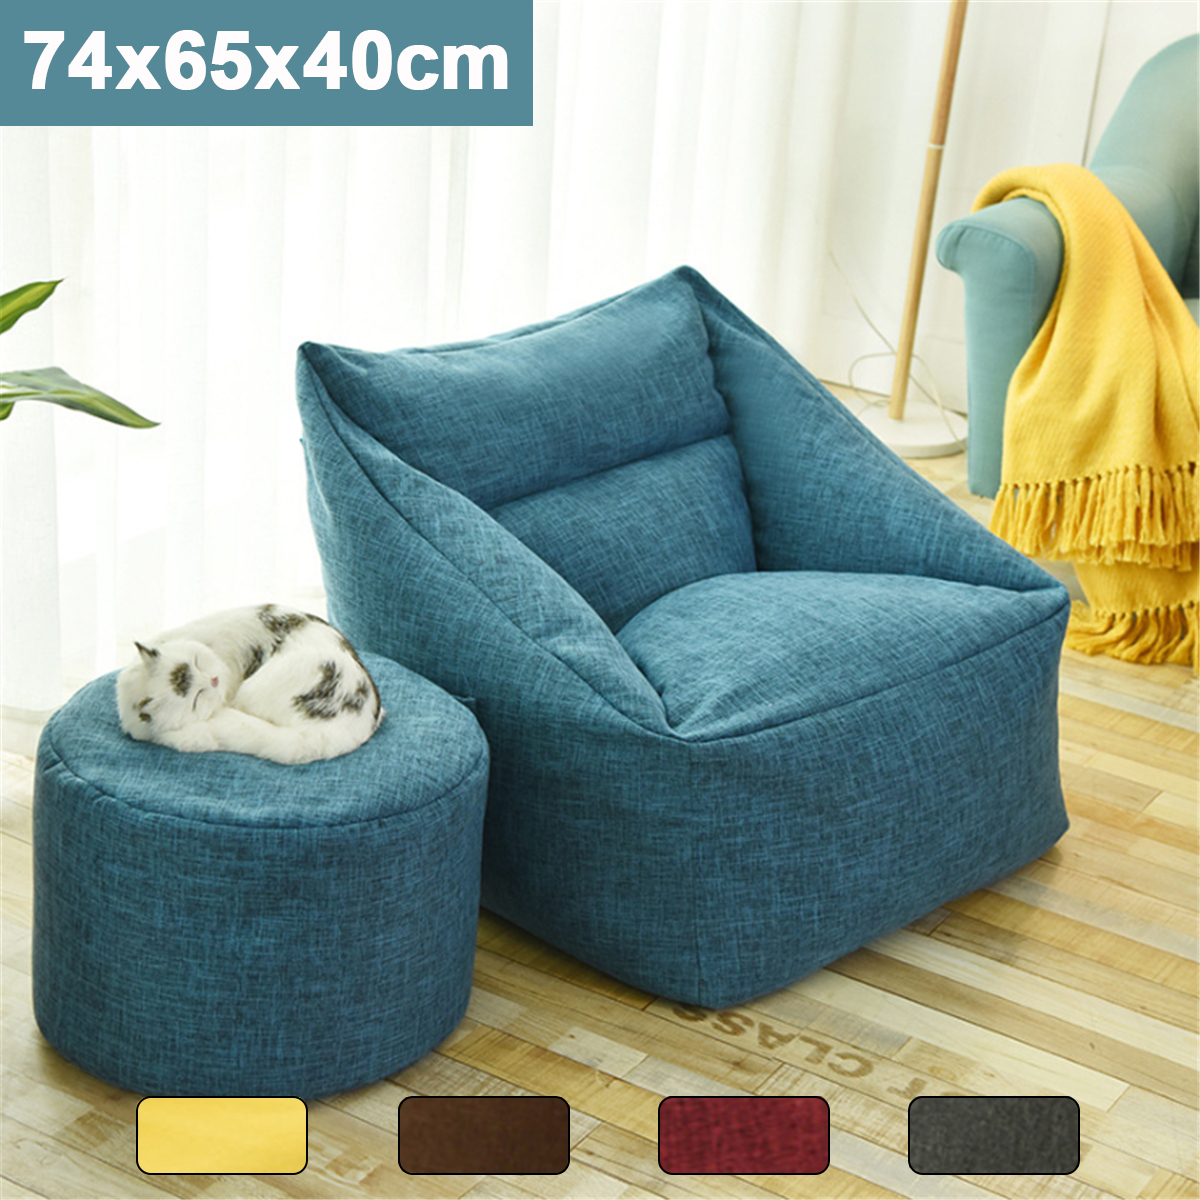 Peachy Details About 2019 Large Bean Bag Chair Sofa Cover Indoor Outdoor Gamer Beanbag For Adult Onthecornerstone Fun Painted Chair Ideas Images Onthecornerstoneorg